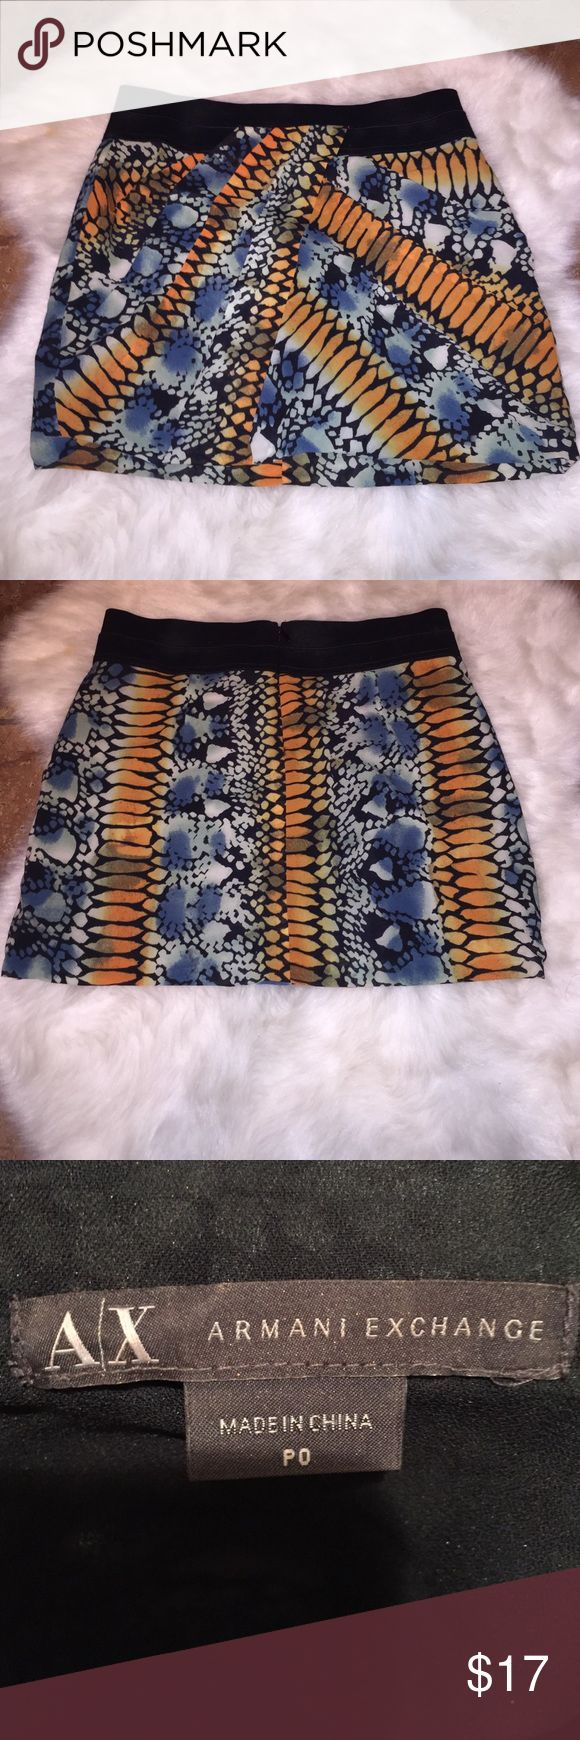 Armani Exchange Exotic mini Skirt Armani Exchange P0 size mini skirt / exotic print. Love! A/X Armani Exchange Skirts Mini